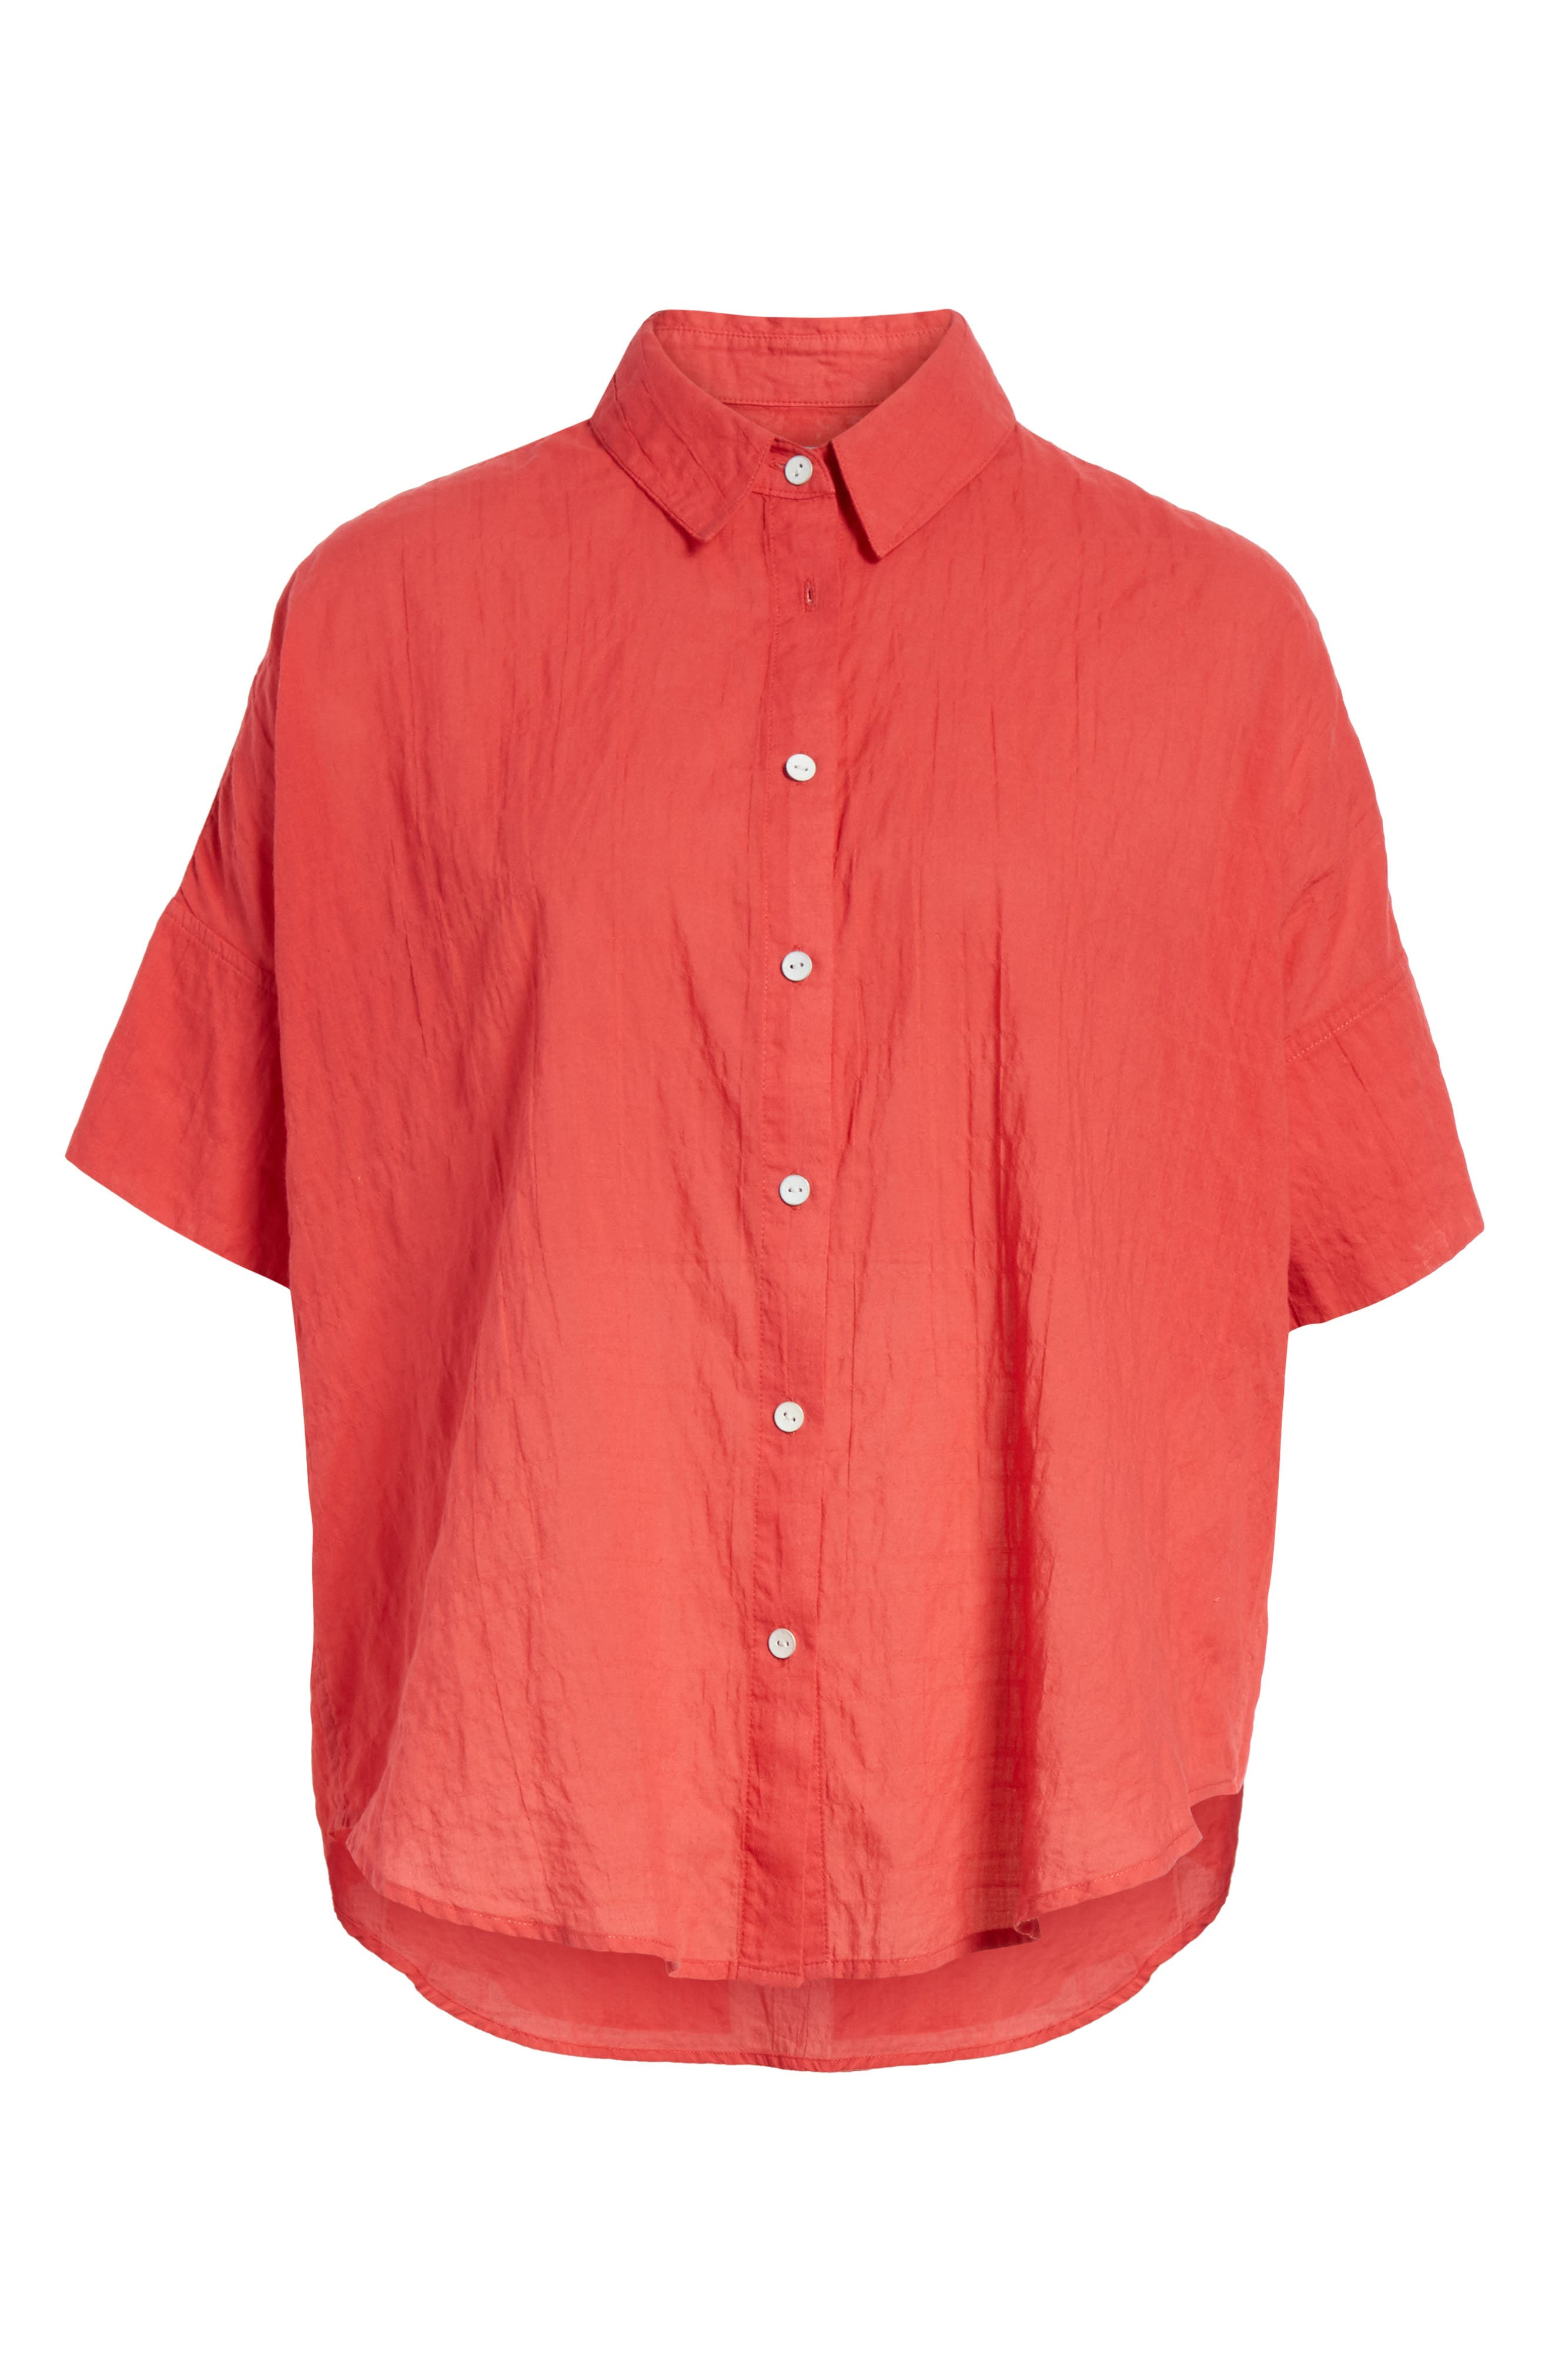 Tie Shirt,                             Alternate thumbnail 6, color,                             Red